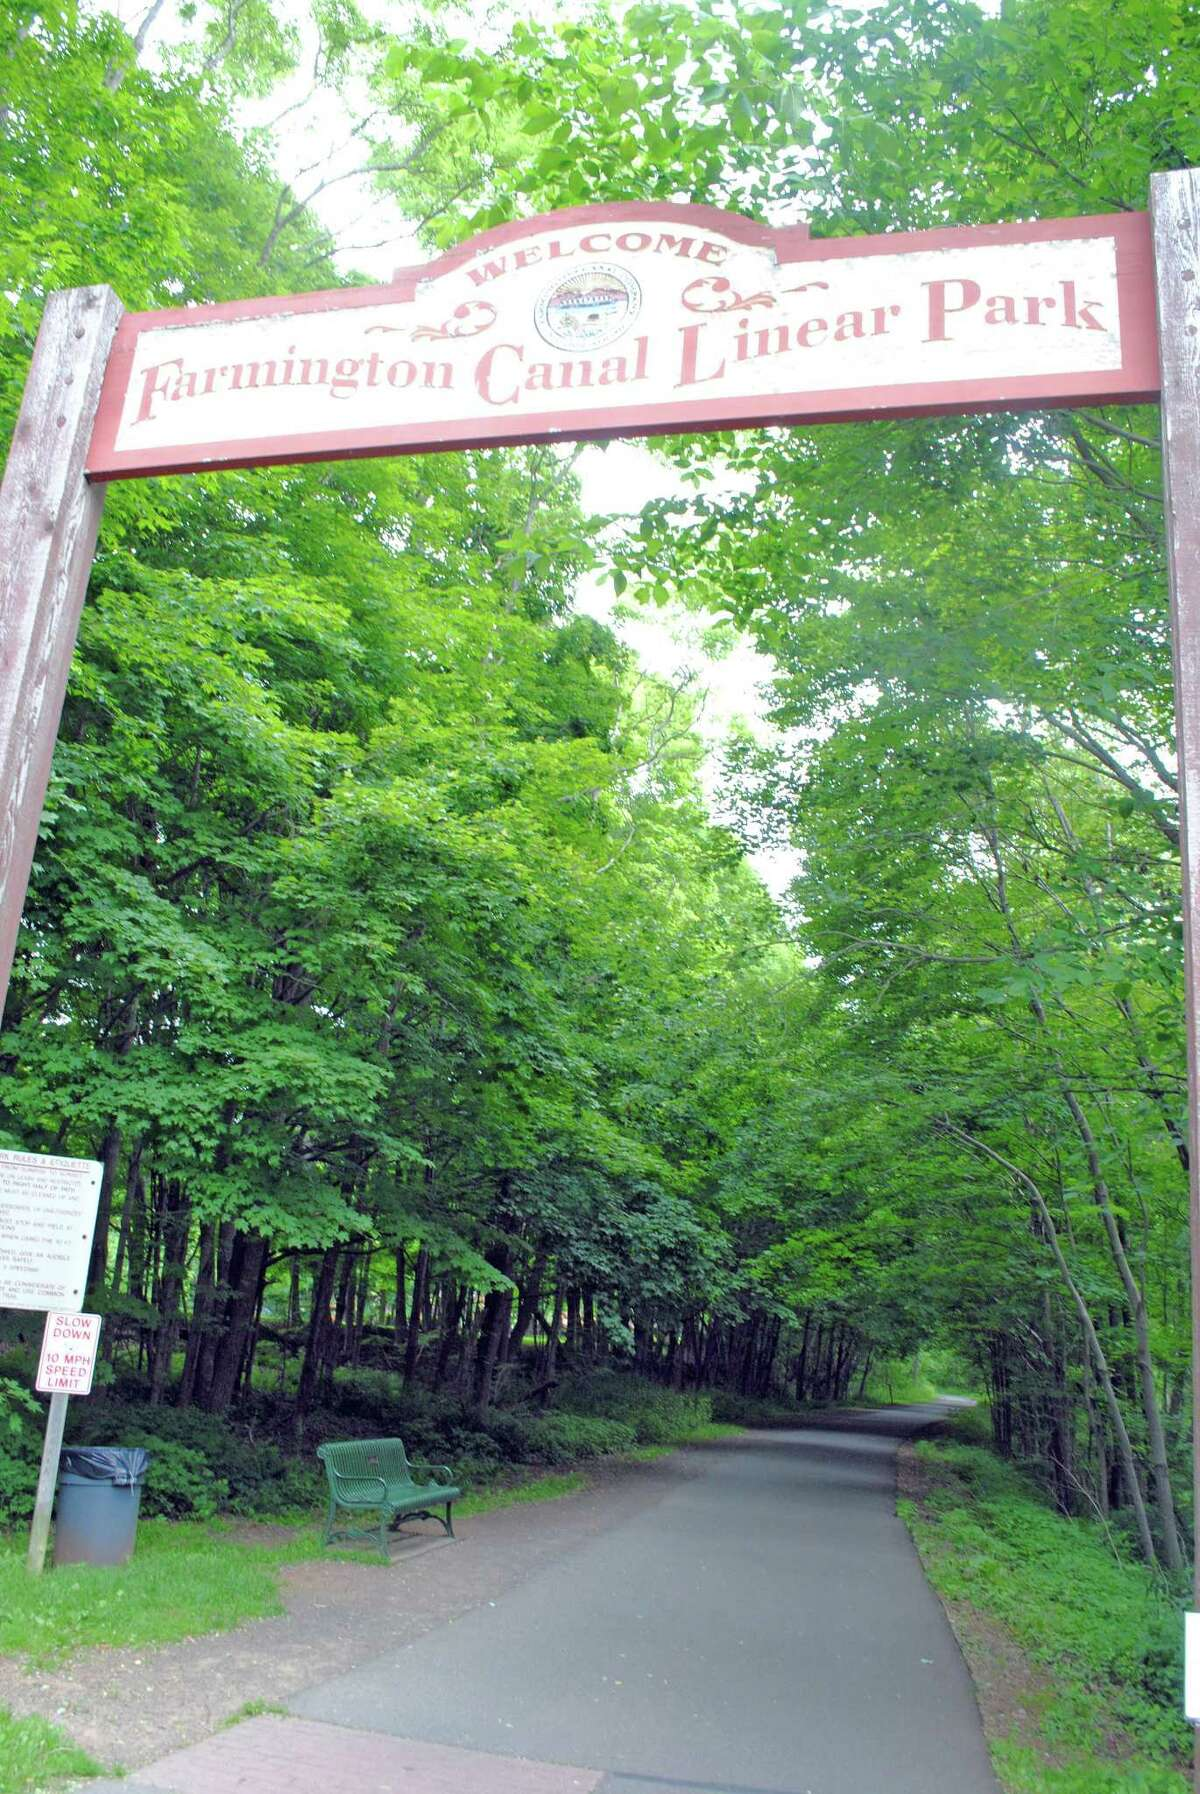 Part of the Farmington Canal LinearTrail that runs through Hamden and Cheshire. The trail, closely following Route 10, was built on the former railbed of the New Haven and Northampton Company and later New York, New Haven and Hartford Railroad. Of course, before the railroad, it was the path along the the Farmington Canal in Connecticut and the Hampshire and Hampden Canal in Massachusetts. In Cheshire, you'll notice Lock 12 park, giving insight into how boats of cargo were transported in the 1800s during the canal's relatively short life.